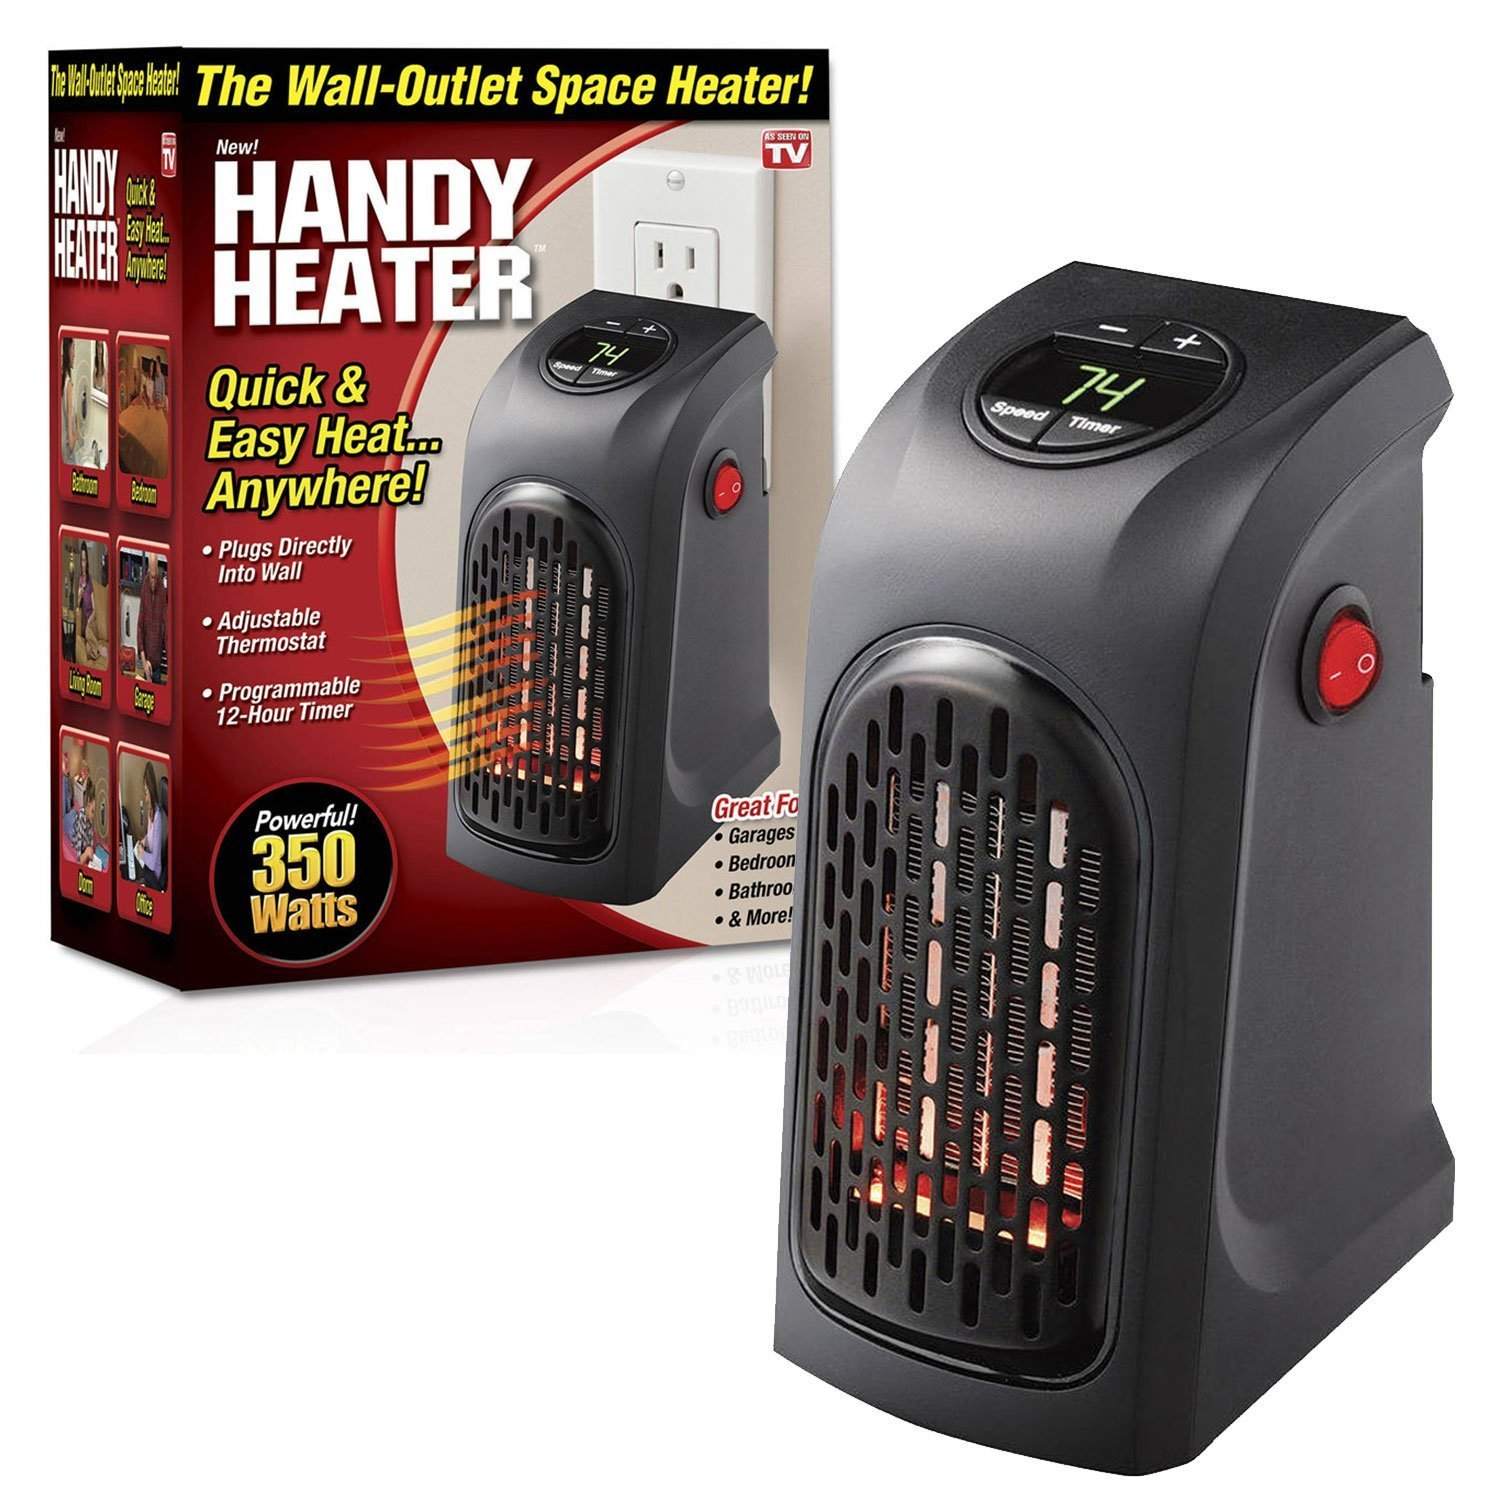 24x7 eMall PVC Handy Compact Plug-In Portable Digital Electric Heater...